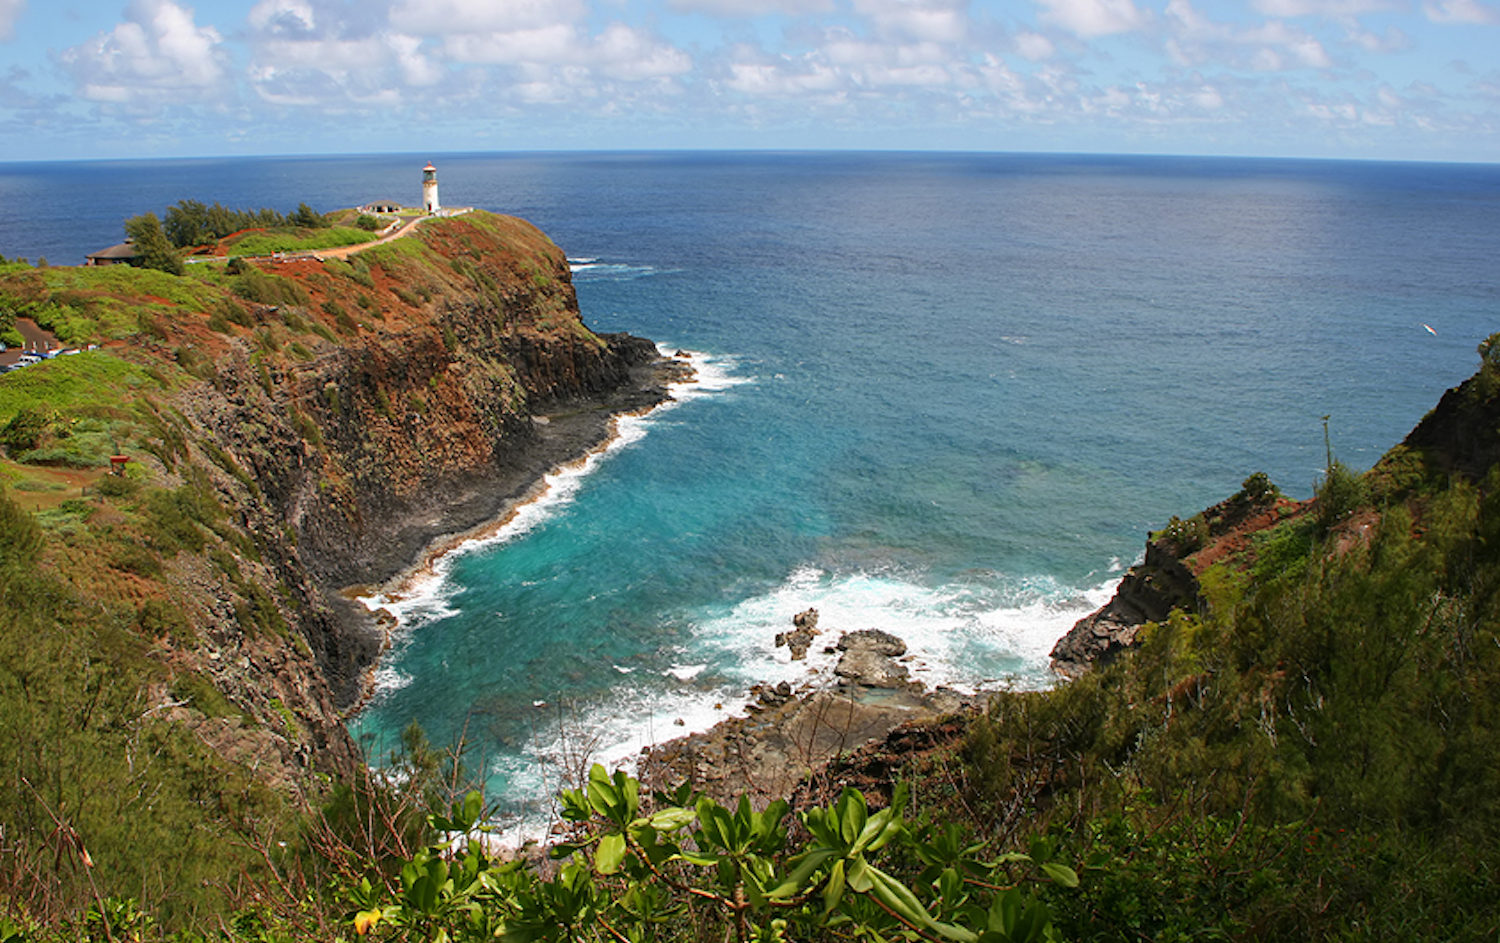 Kilauea Lighthouse, Kauai Hawaii with GyPSy Guide Tour App